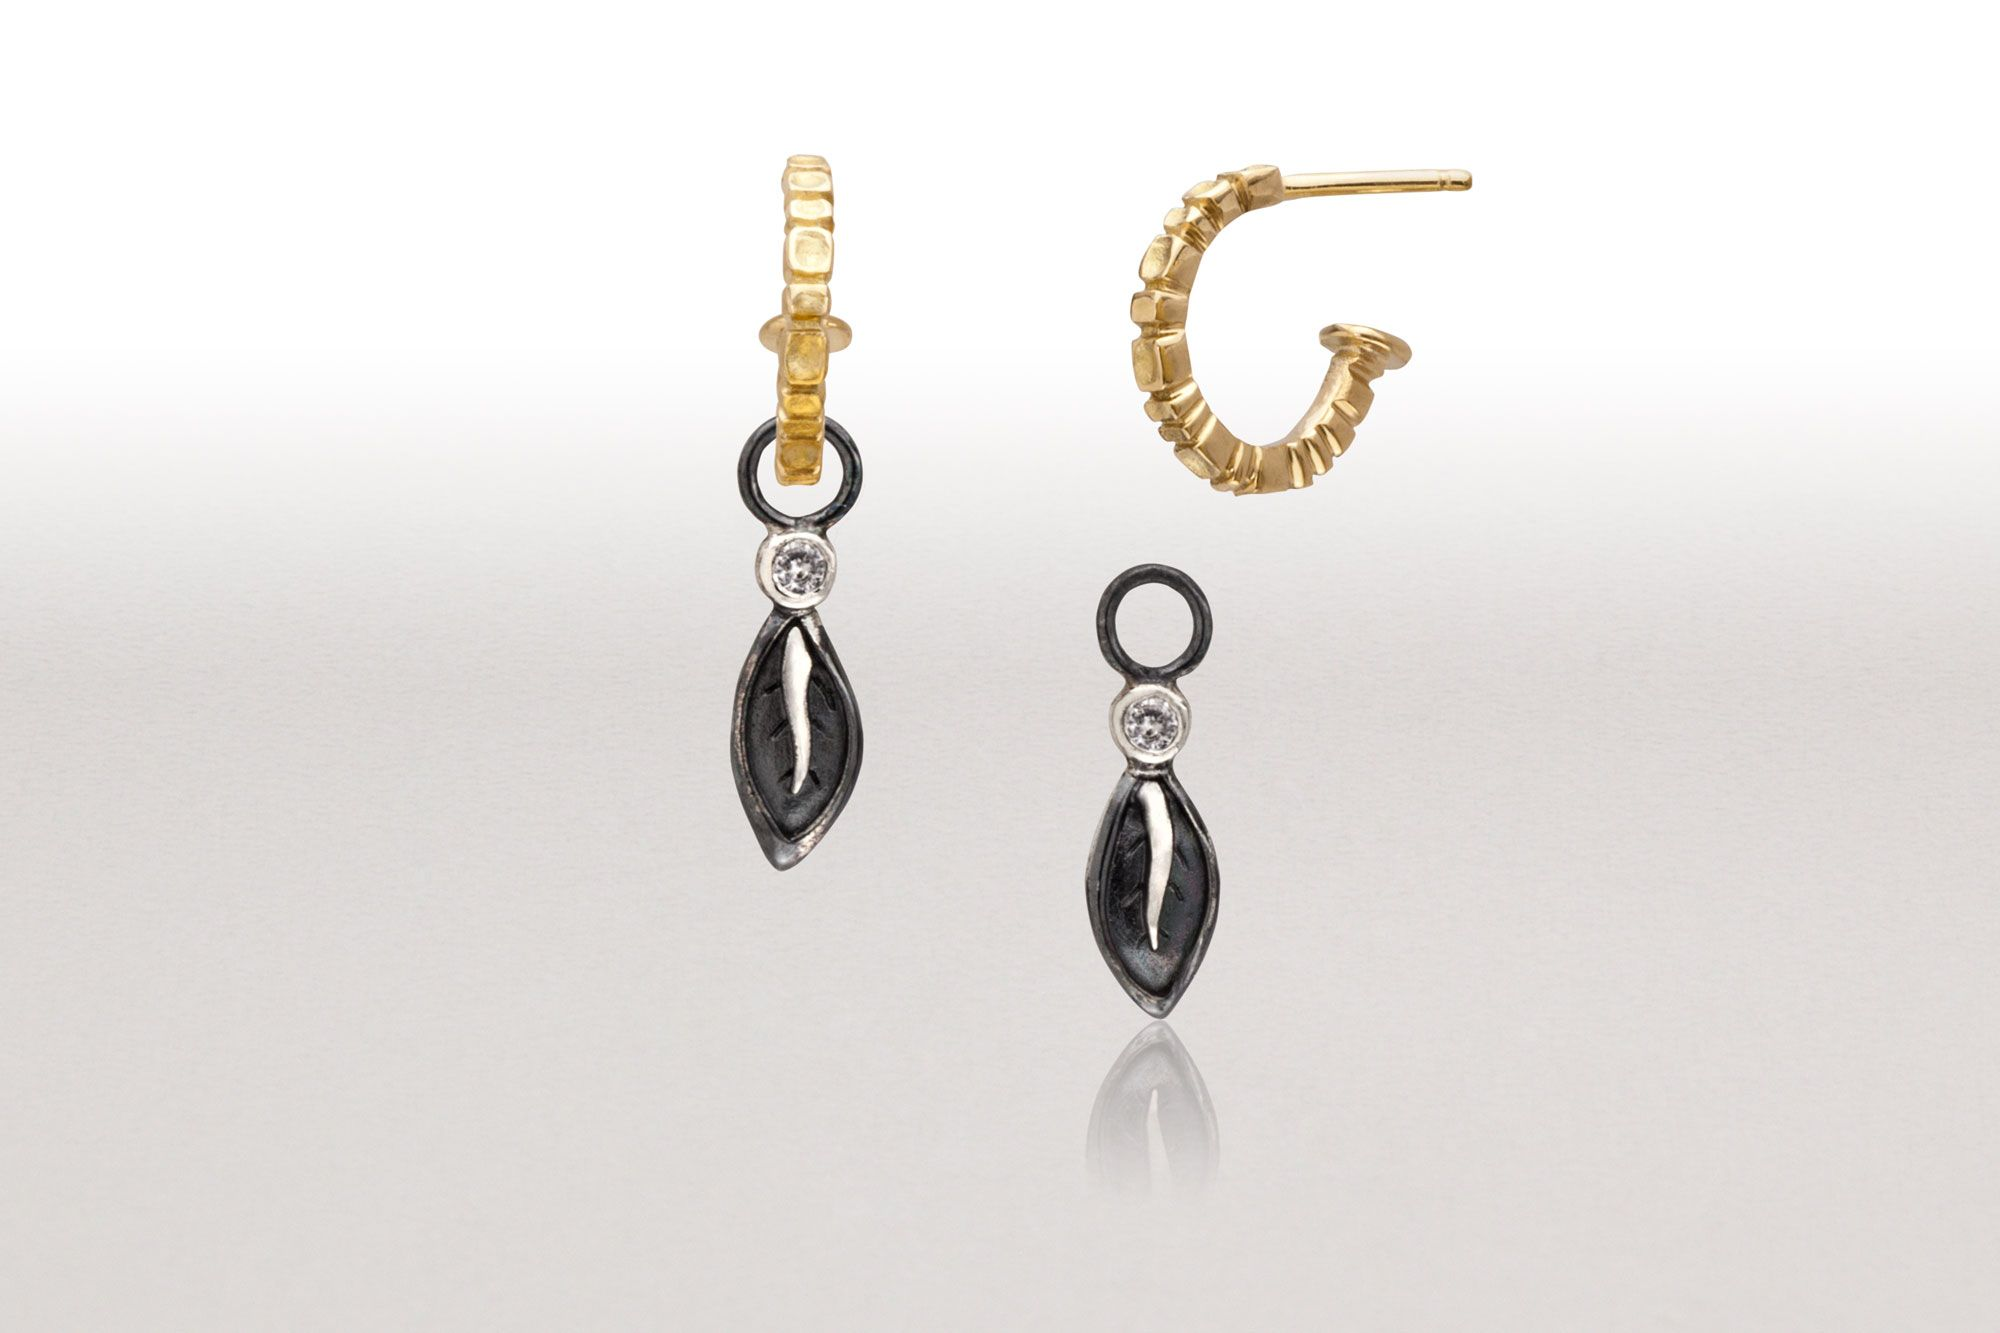 conni mainne combination of 18k gold demi hoop earrings and